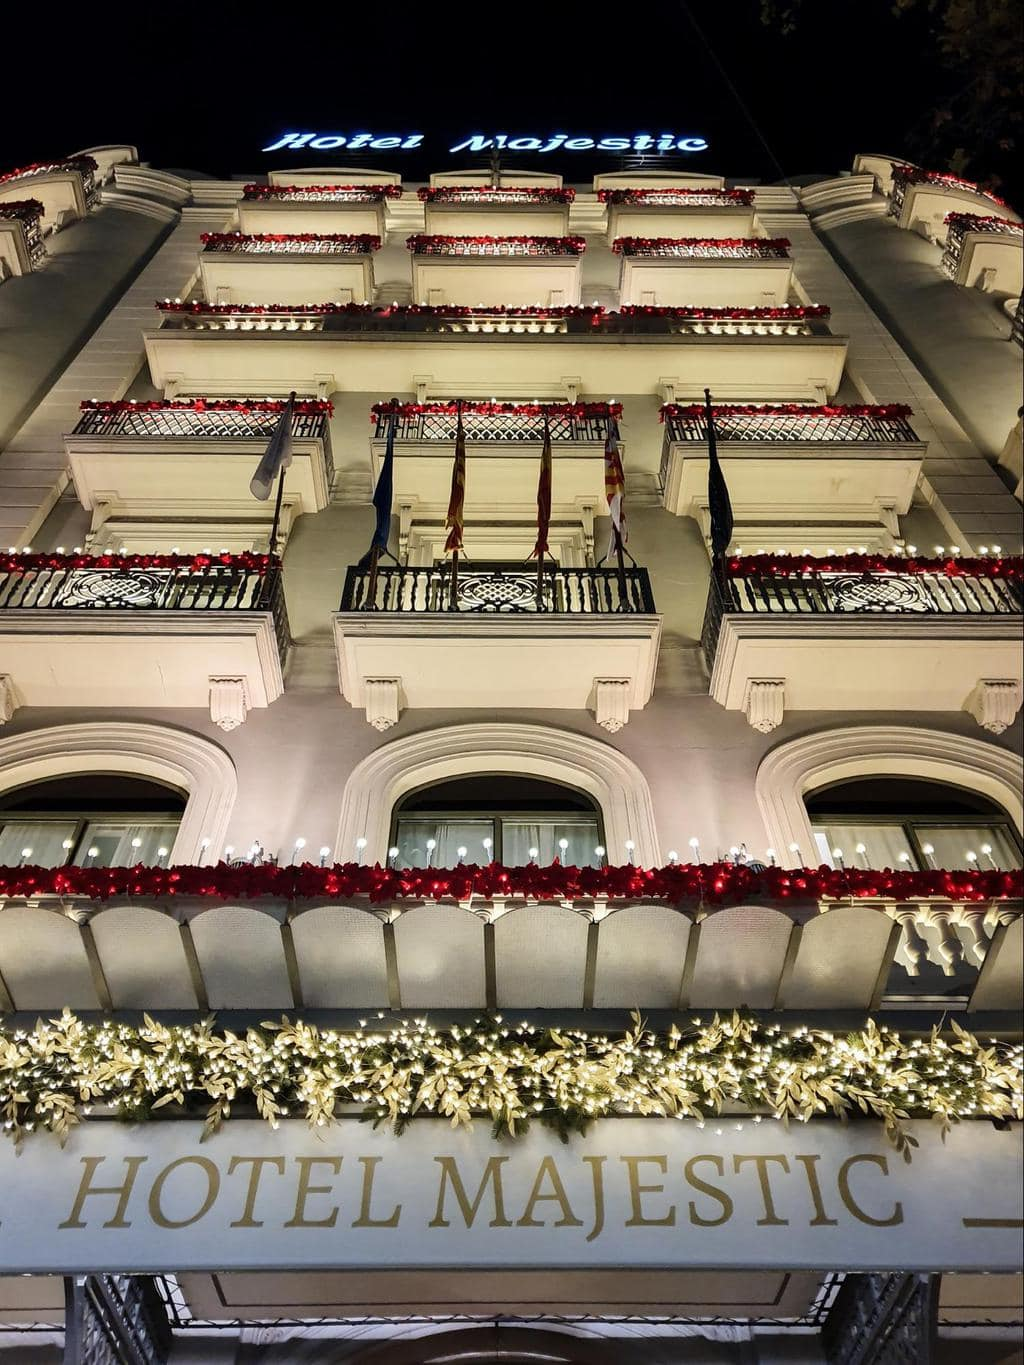 Majestic Hotel & Spa Barcelona Christmas facade decorations